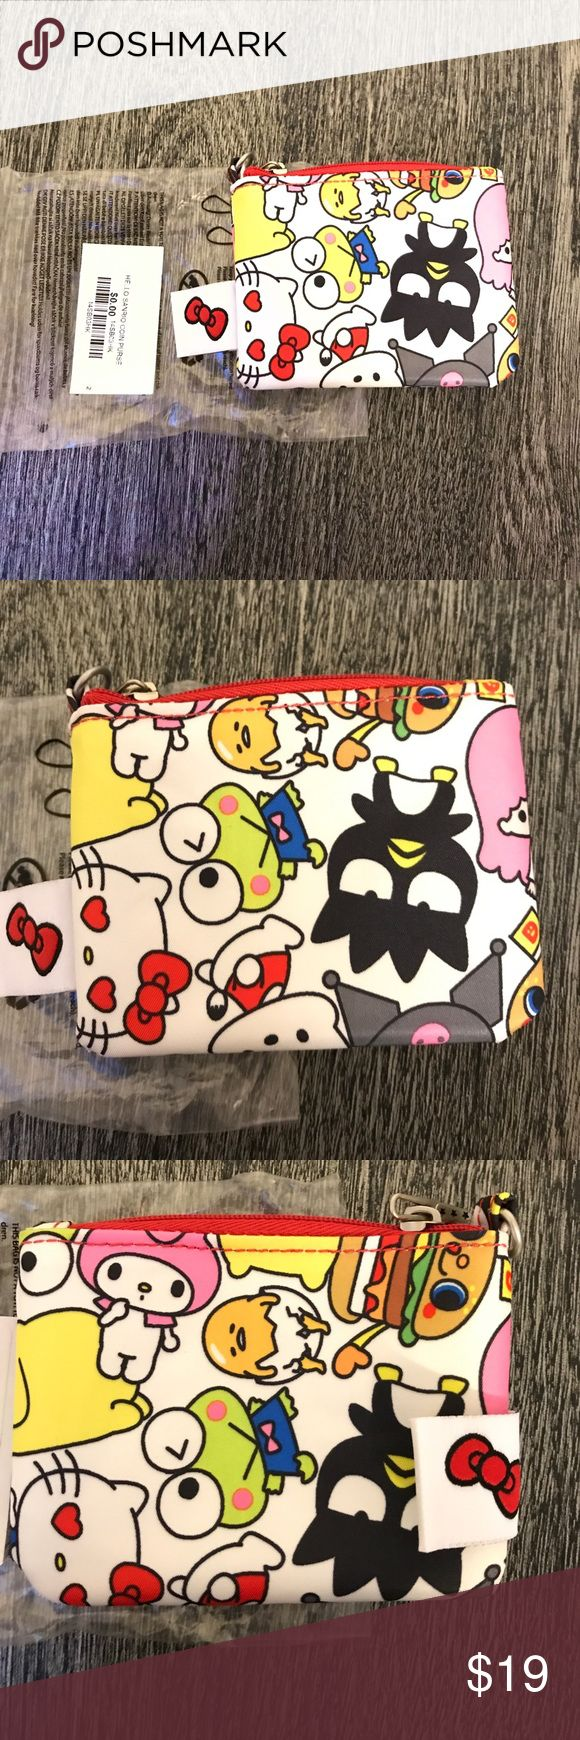 JuJuBe Hello Sanrio Coin Purse JuJuBe Hello Sanrio Hello Kitty Coin Purse. Accessorize your Diaper bag with these cute and functional bags. This little bag fits eos chap stick, cards, small toys, snacks, band aids...anything you like! . JuJuBe  Bags Baby Bags